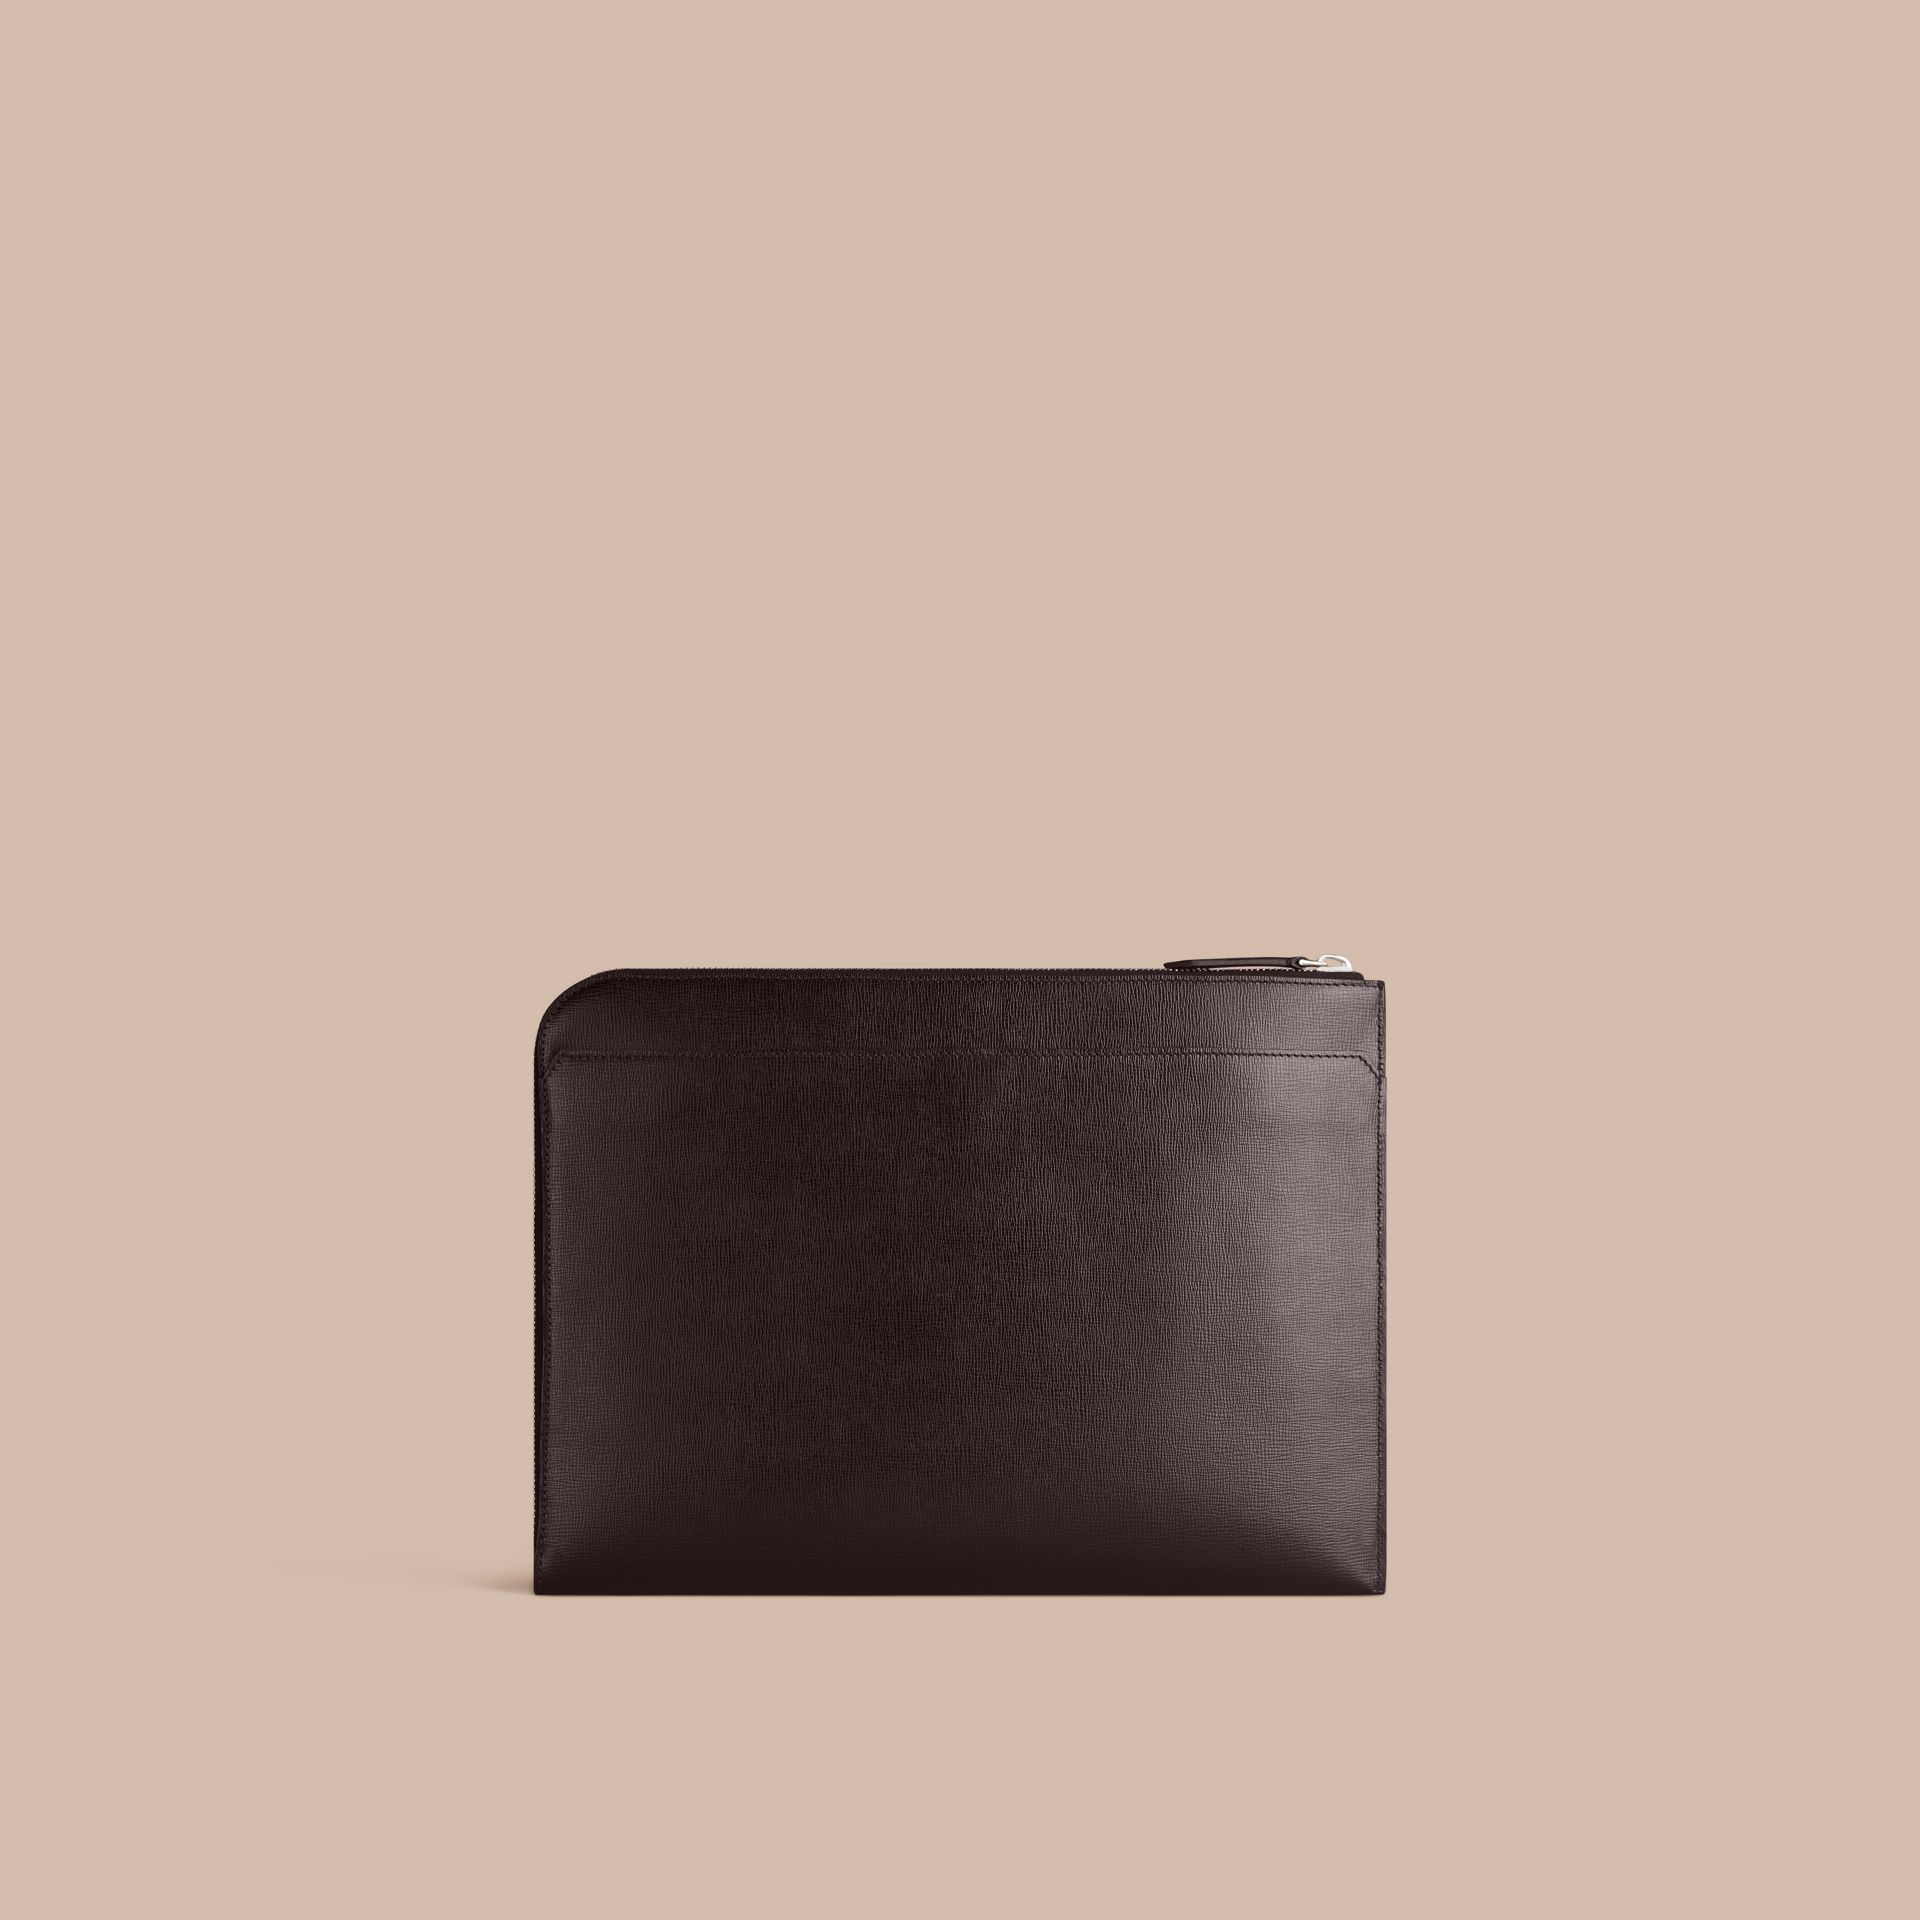 London Leather Document Case in Black - gallery image 4